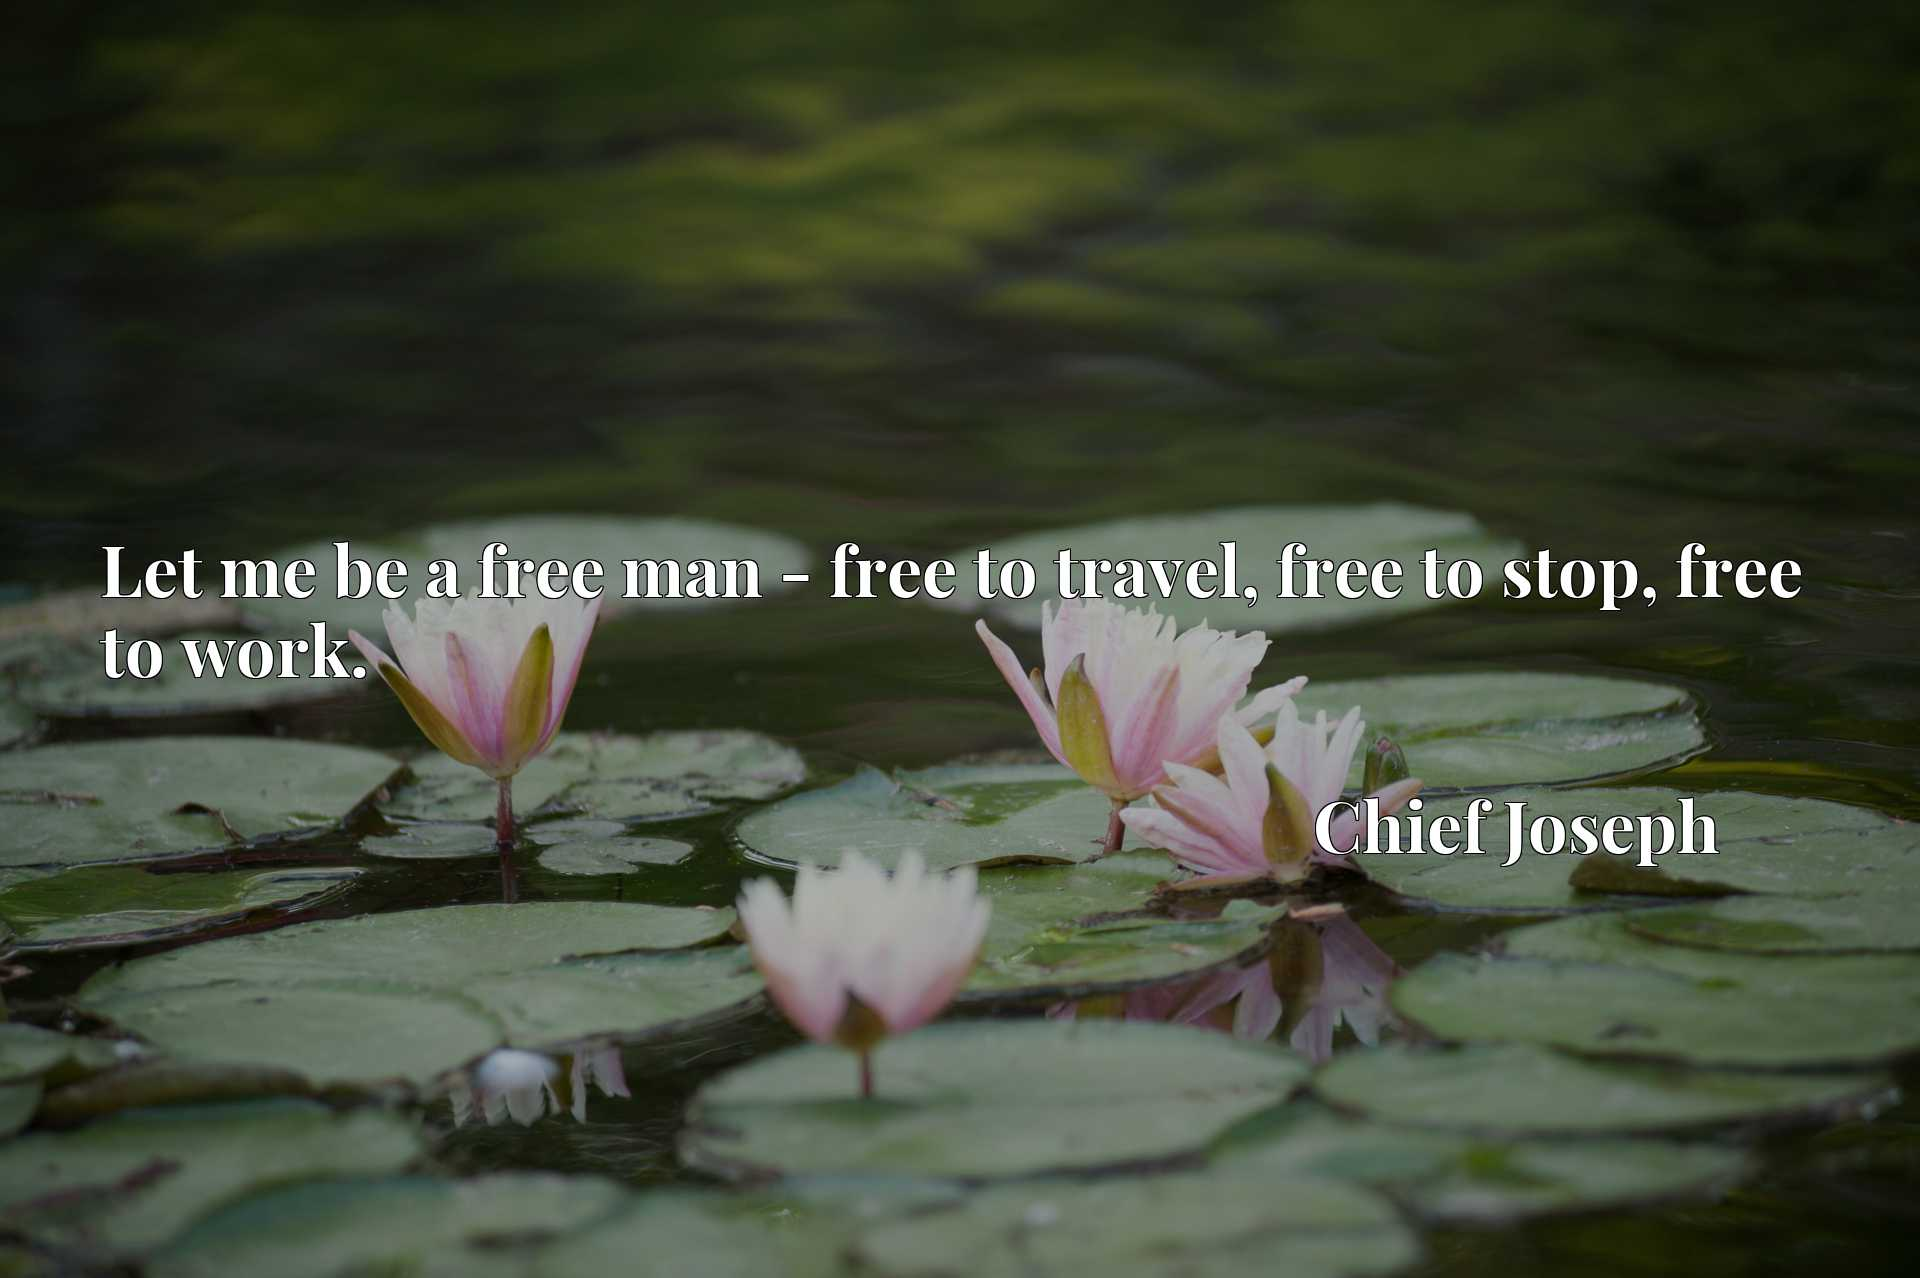 Let me be a free man - free to travel, free to stop, free to work.